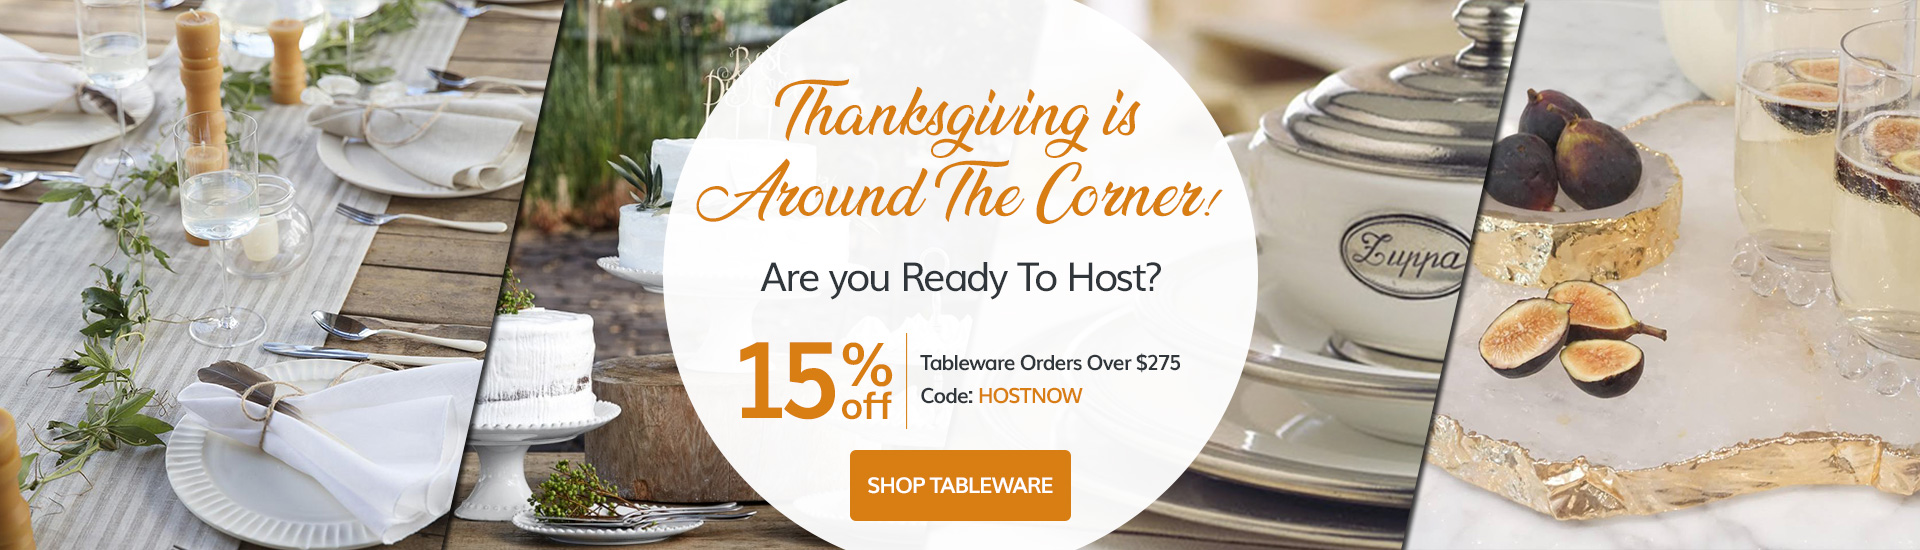 Decorate Your Thanksgiving Table In Style and SAVE